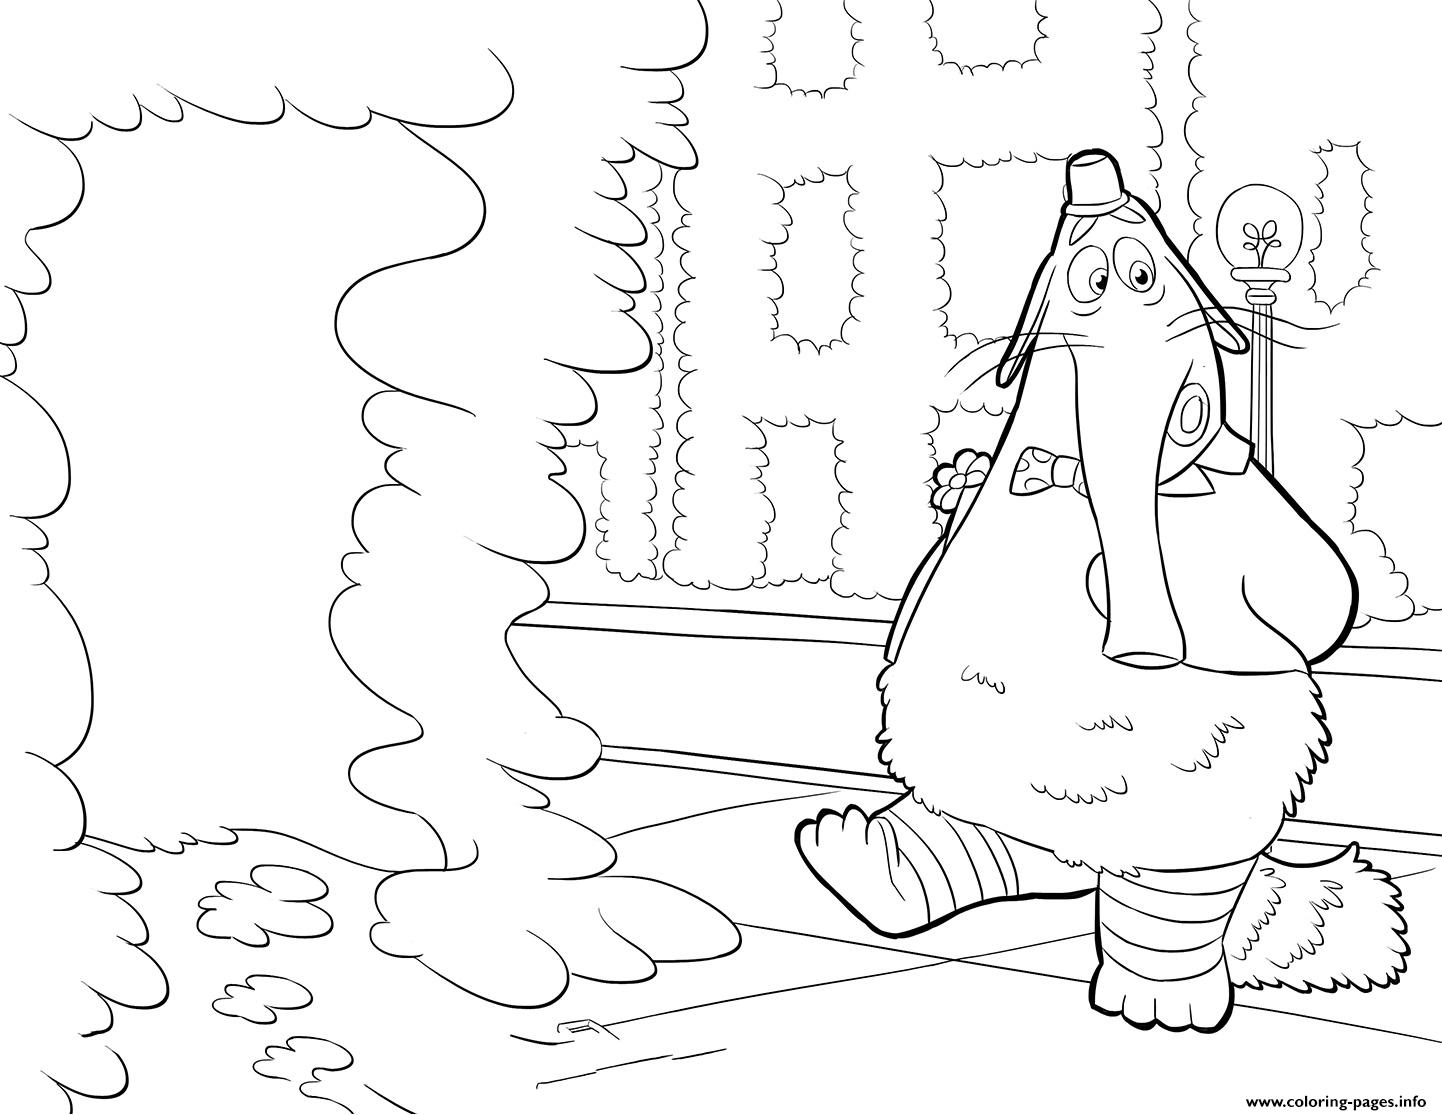 inside out bing bong coloring pages | Bing Bong Inside Out Coloring Pages Printable